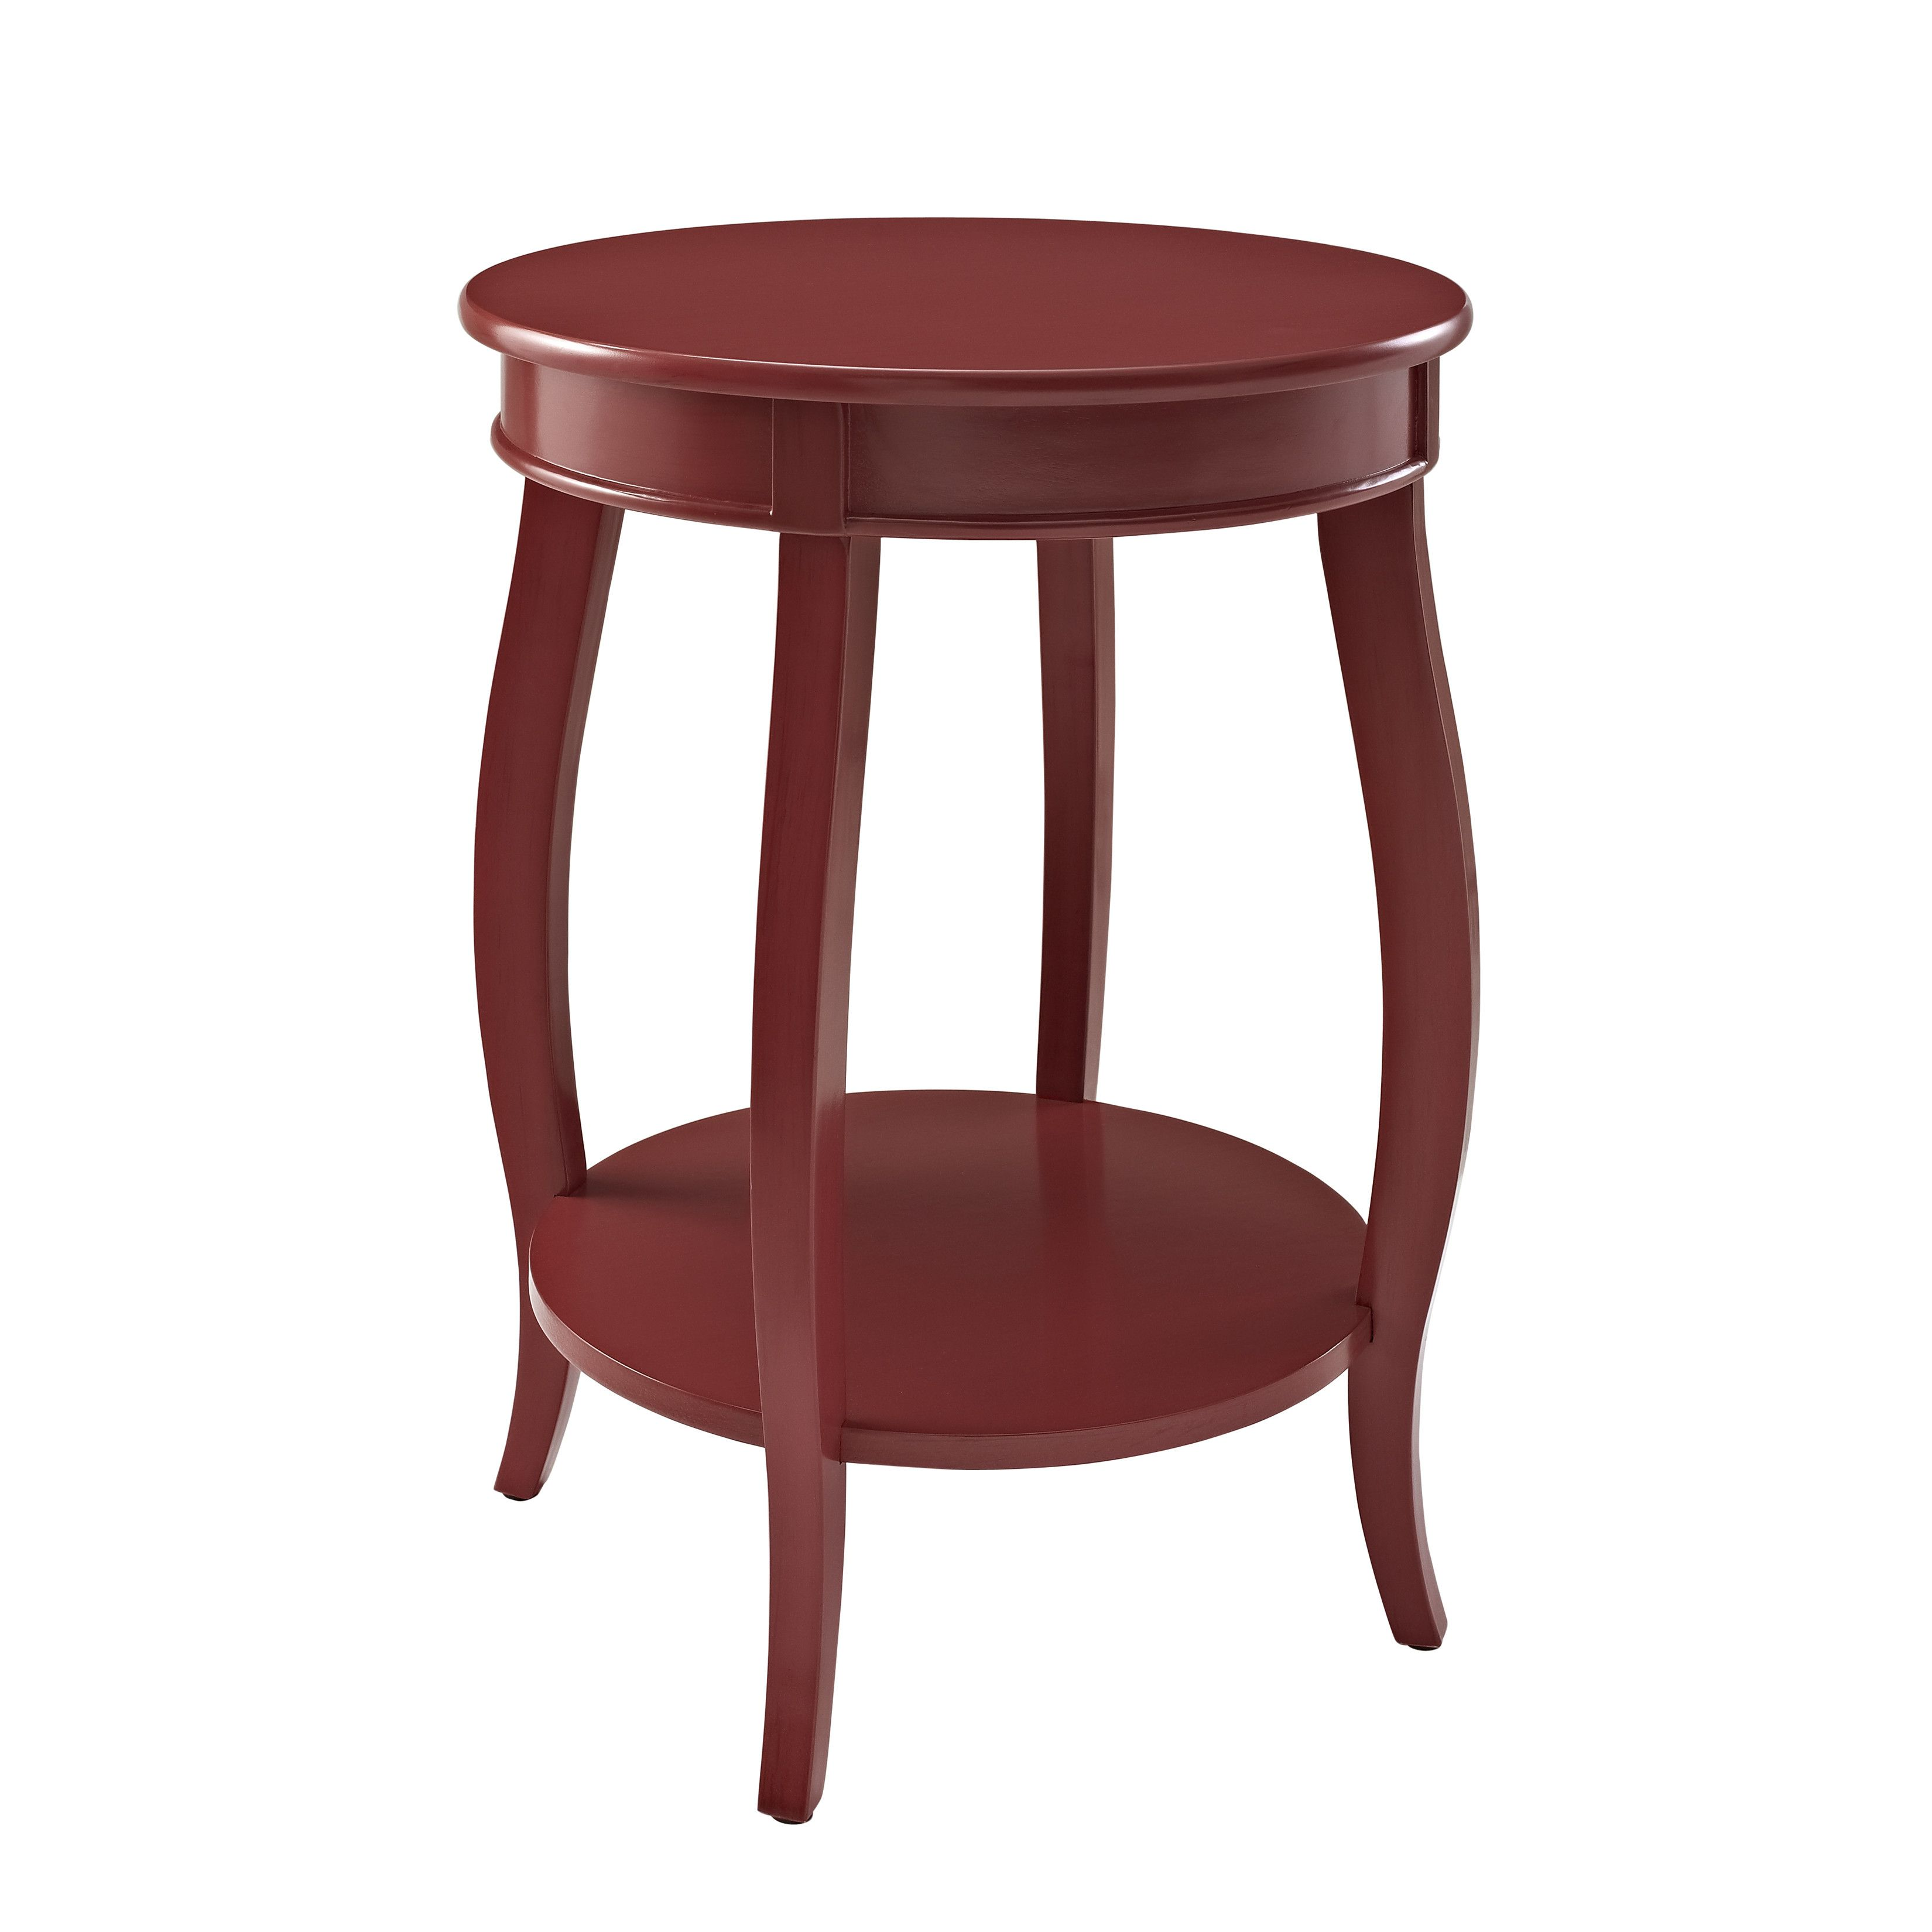 Wayfair For End Tables To Match Every Style And Budget Enjoy Free Shipping On Most Stuff Even